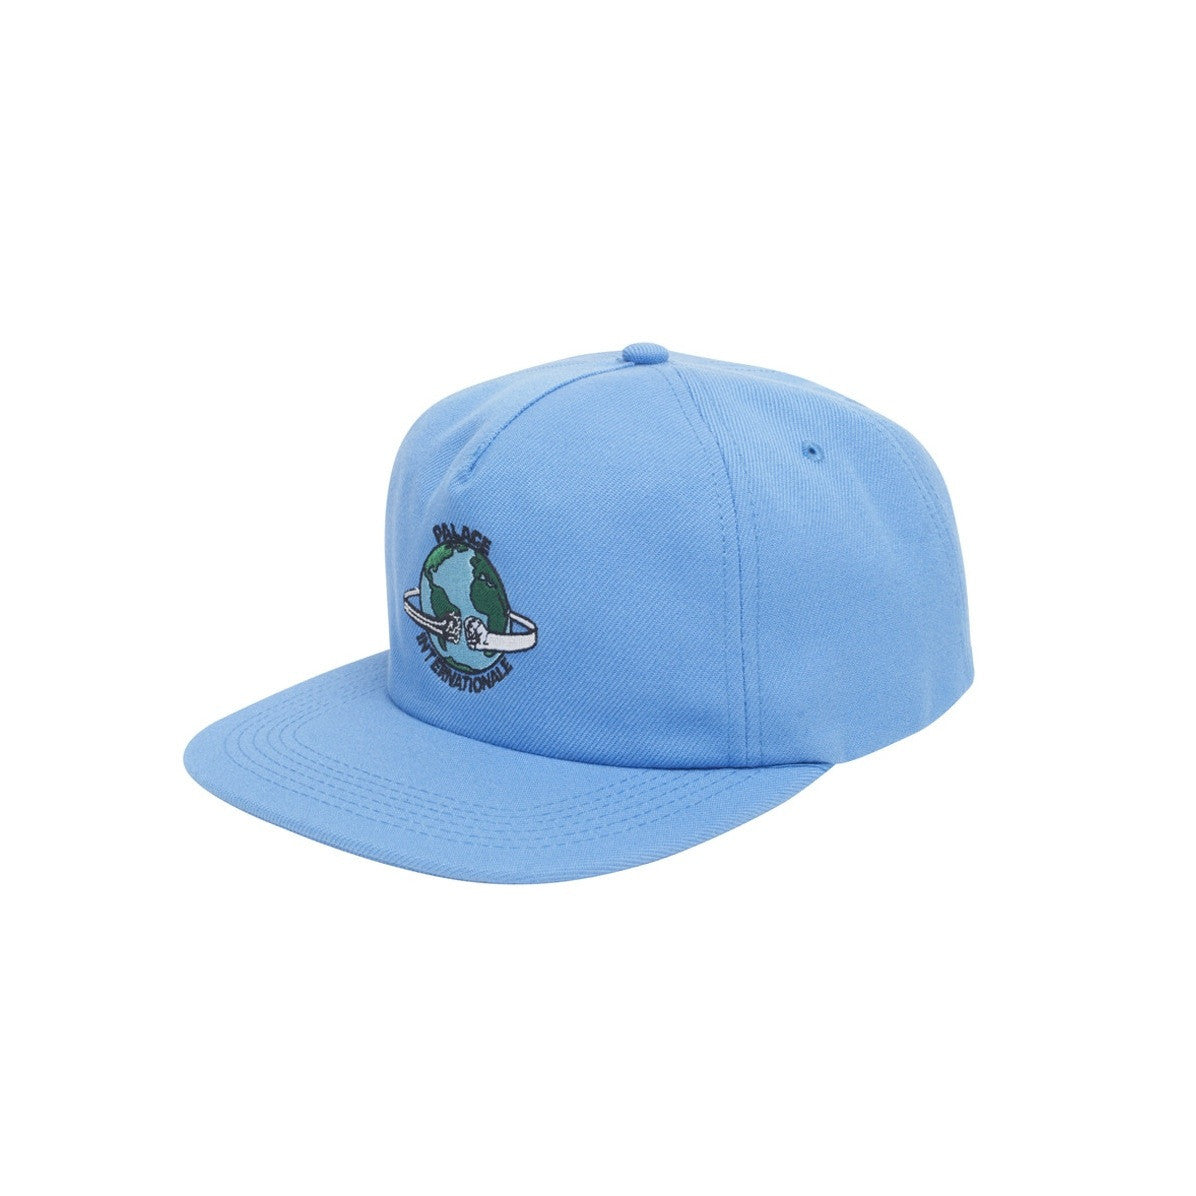 *new* Palace Internationale Fist Bump Snapback DS